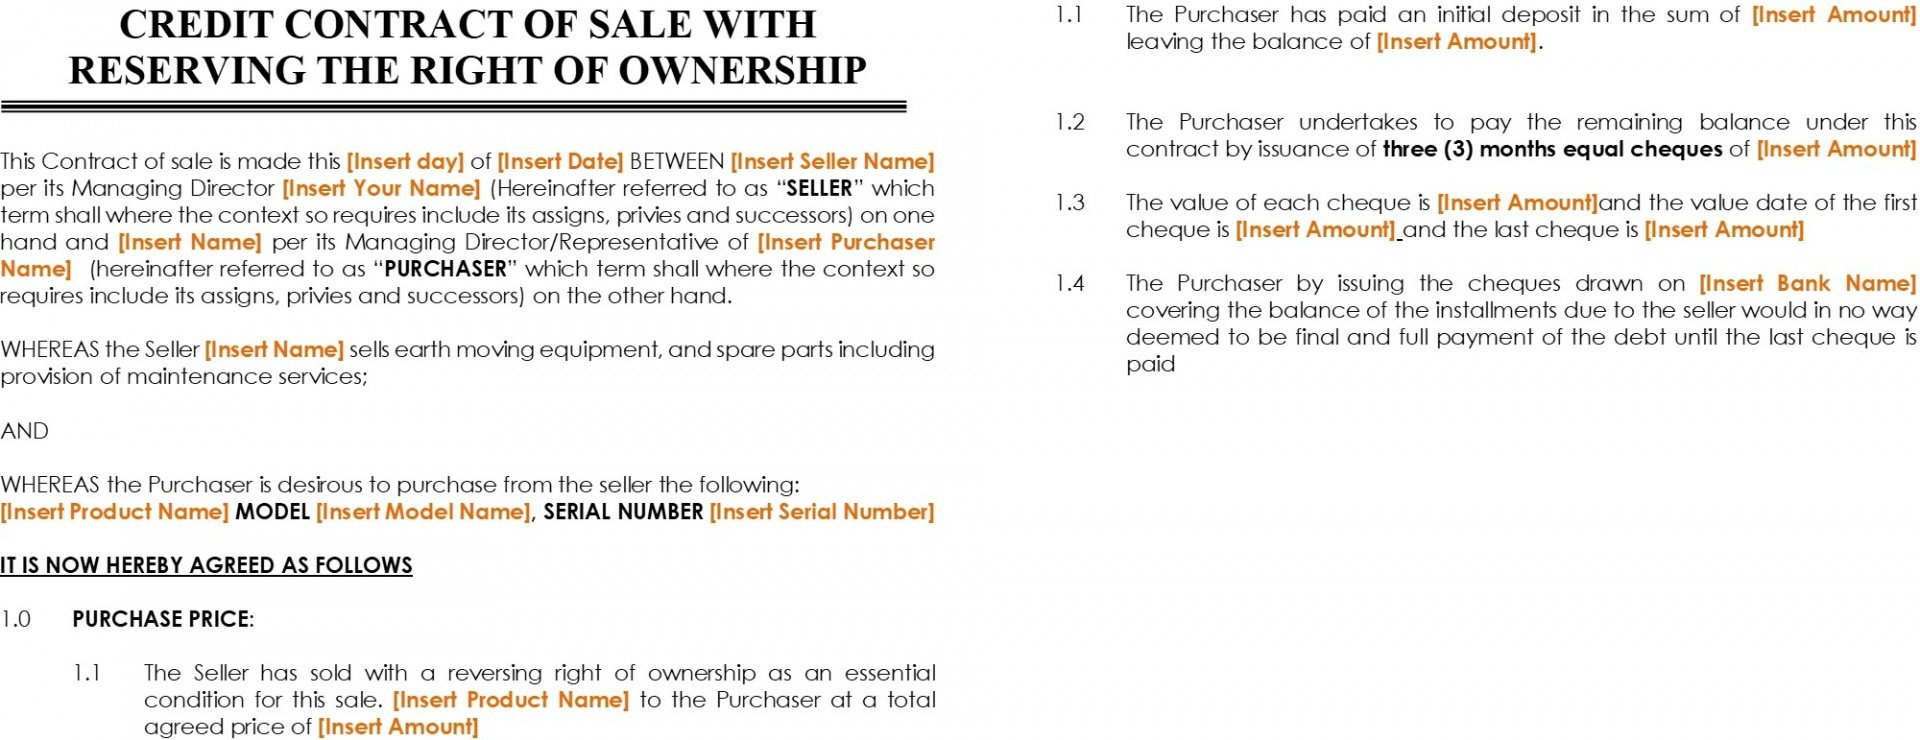 sales agreement with reserving the right of ownership 2